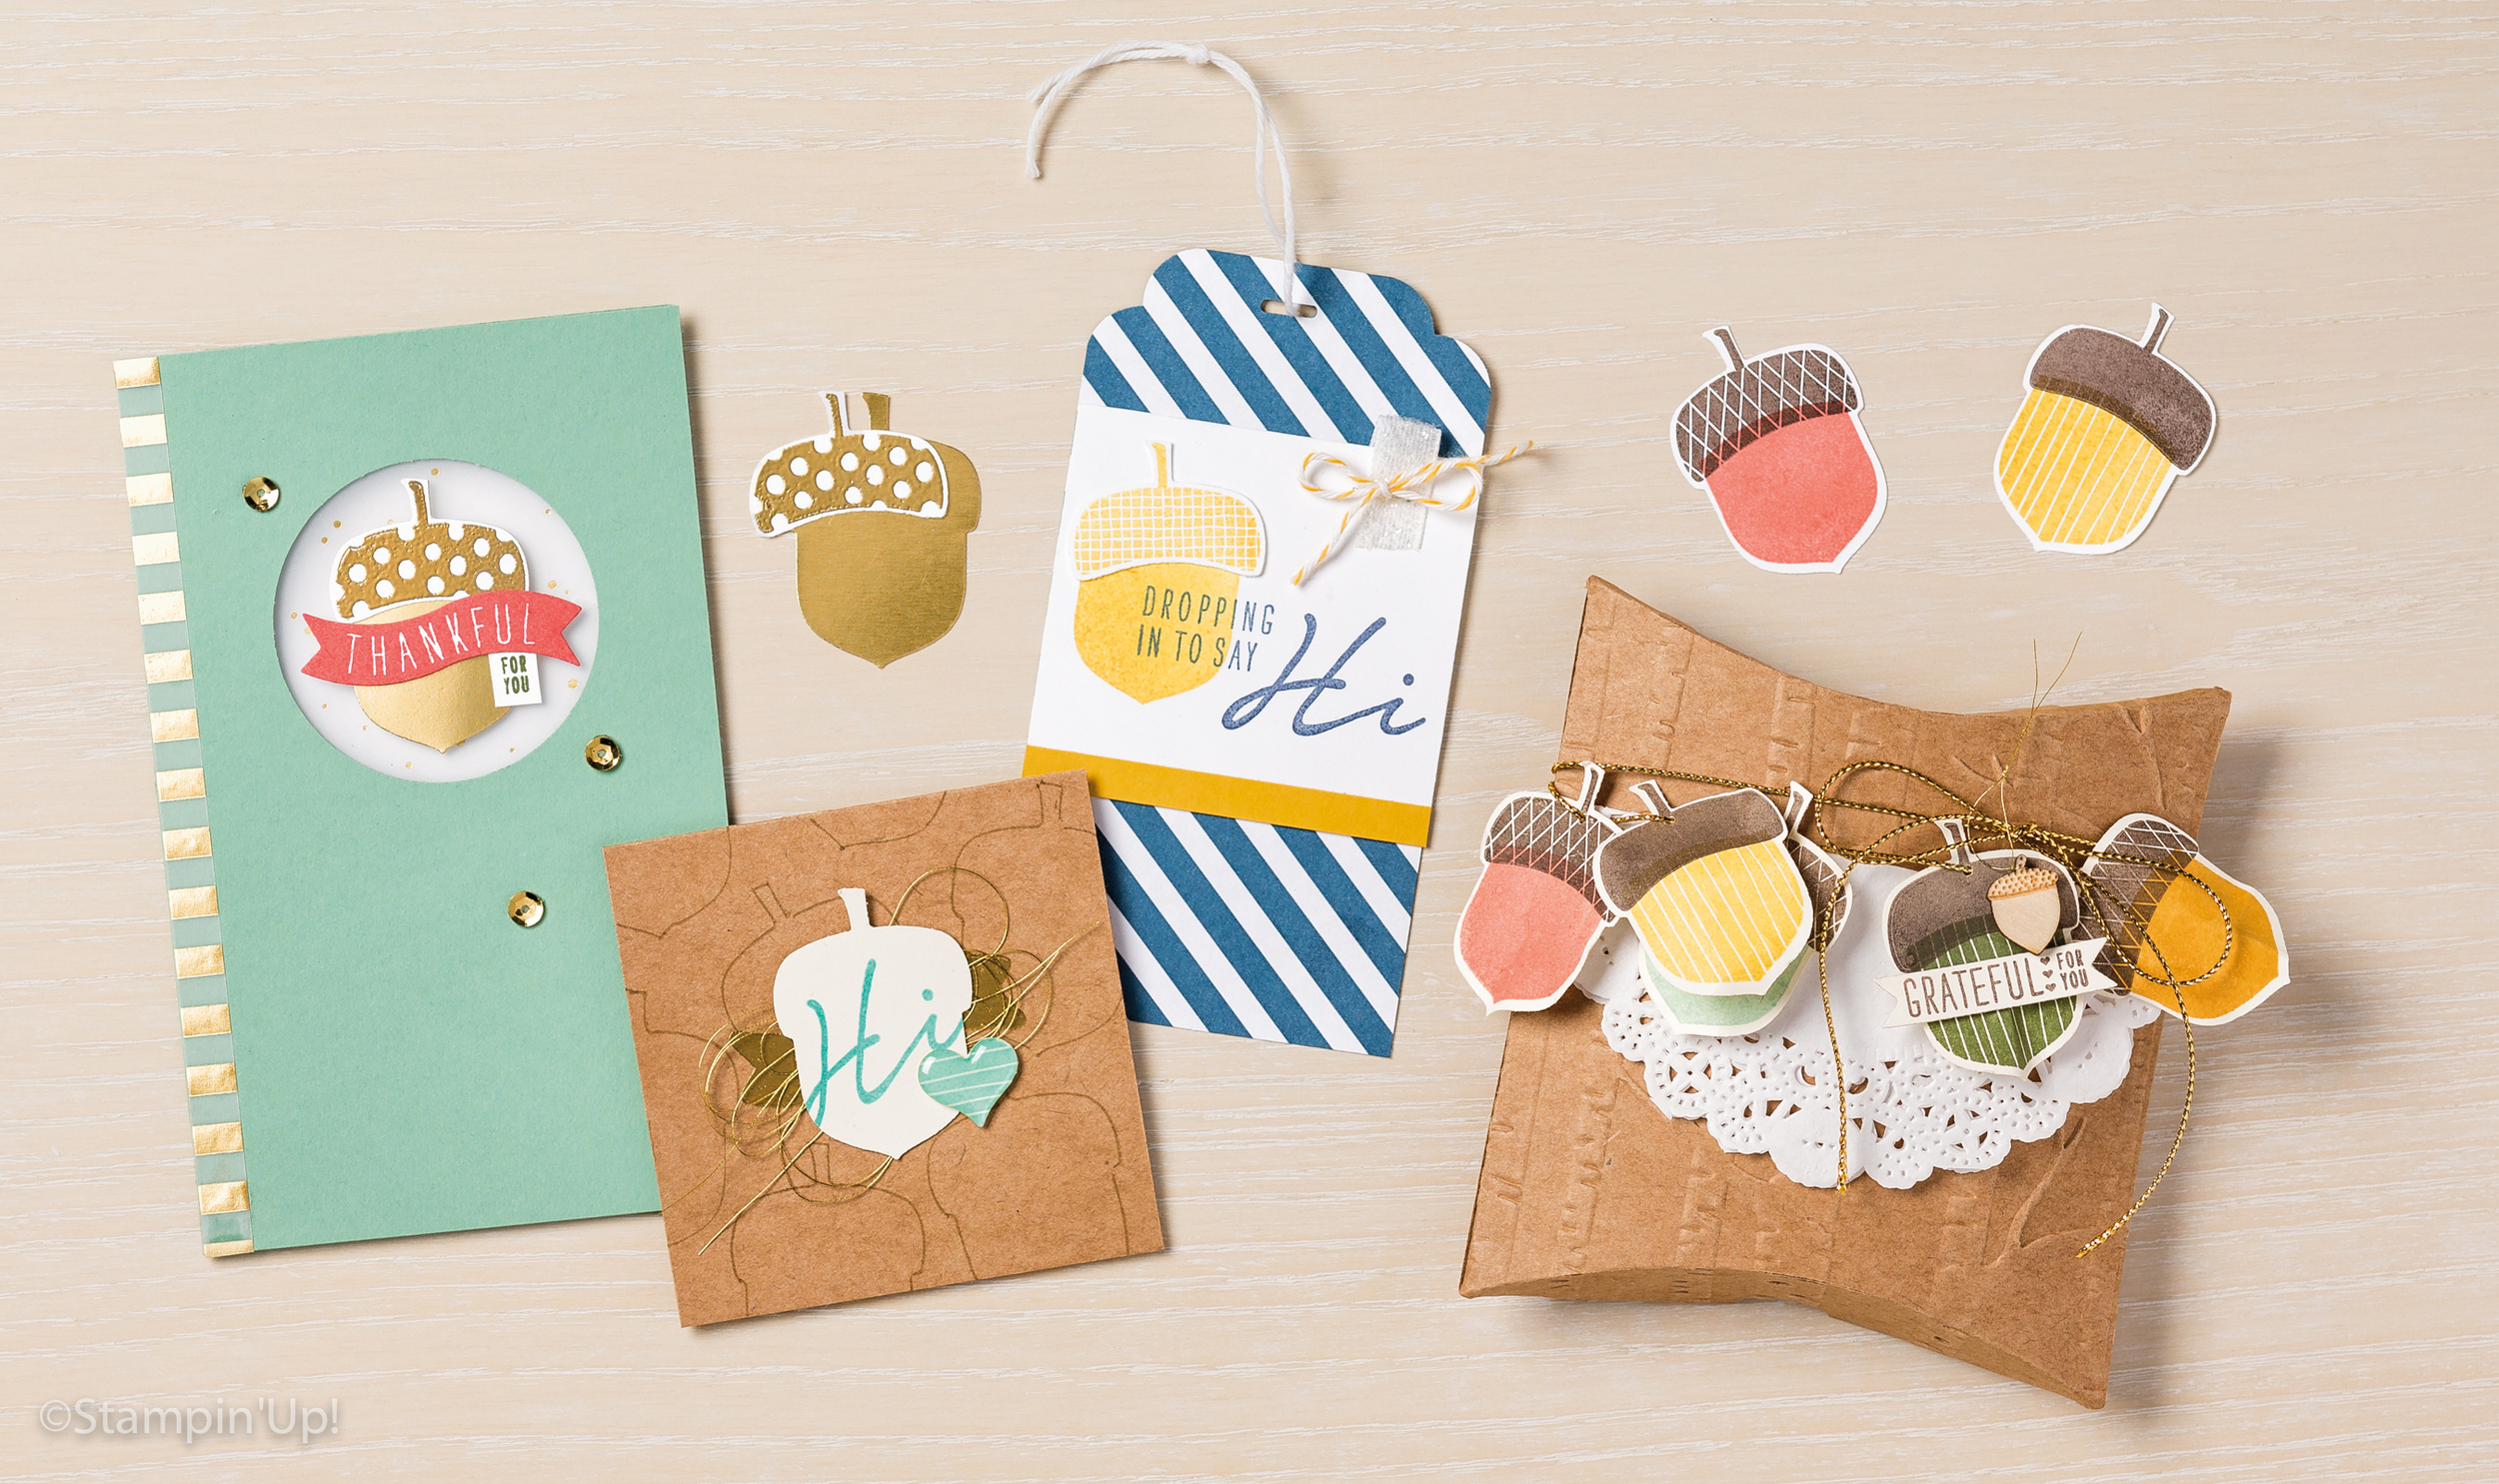 More cute ACORNY sample inspiration from the Stampin' Up! holiday catalog